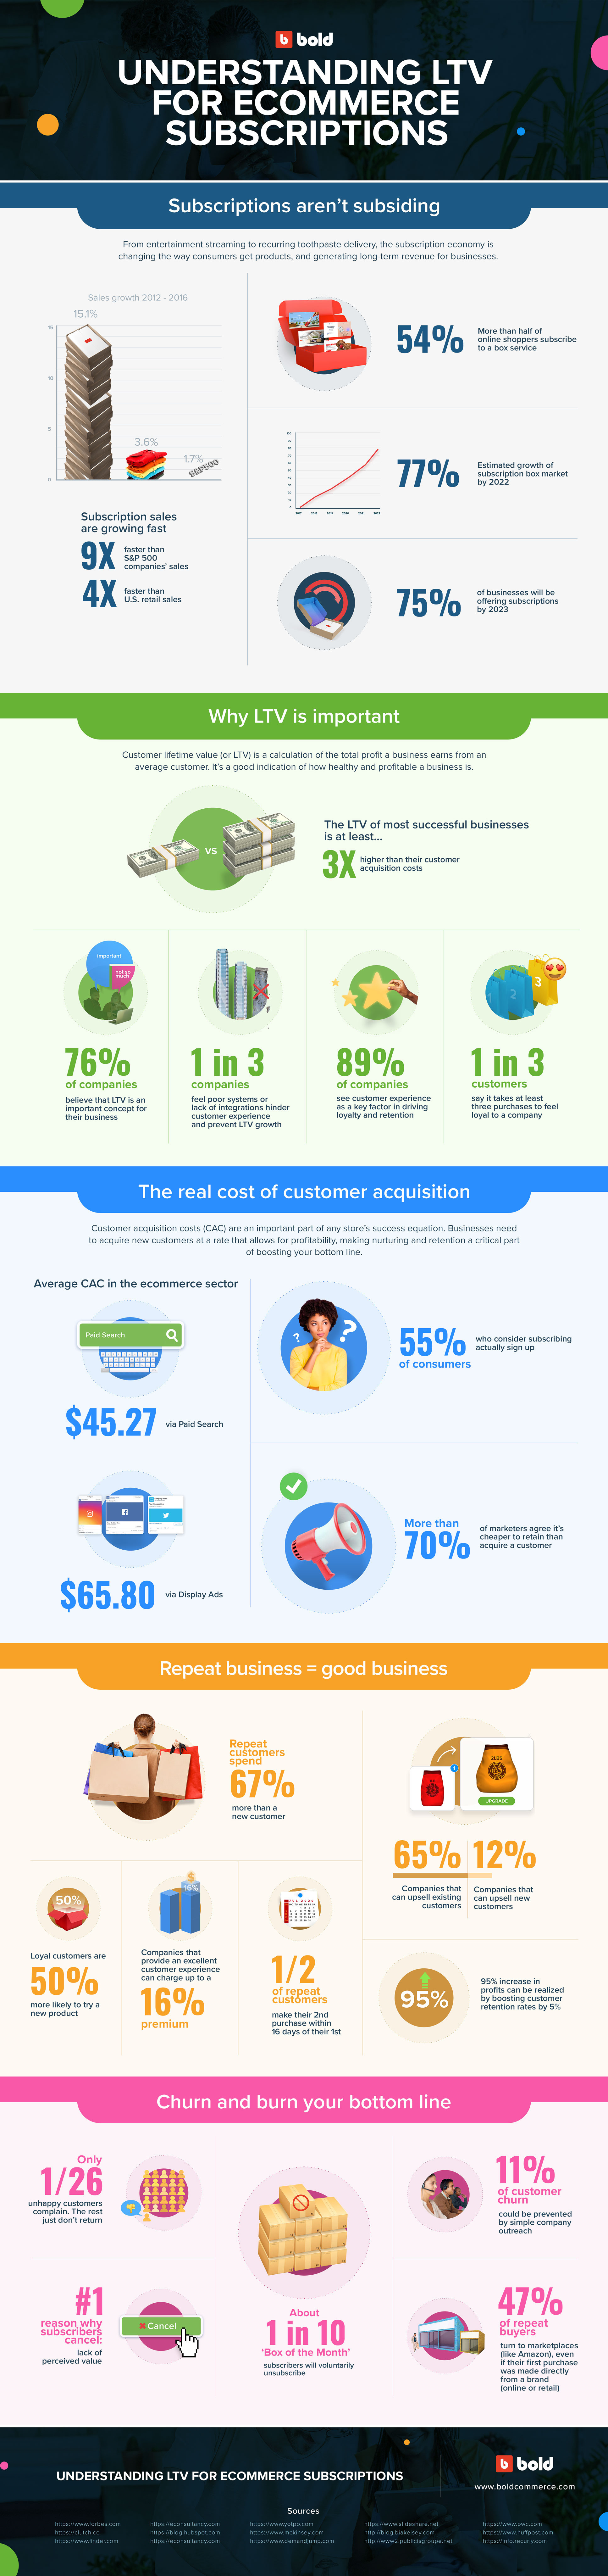 Infographic explaining LTV for ecommerce subscriptions